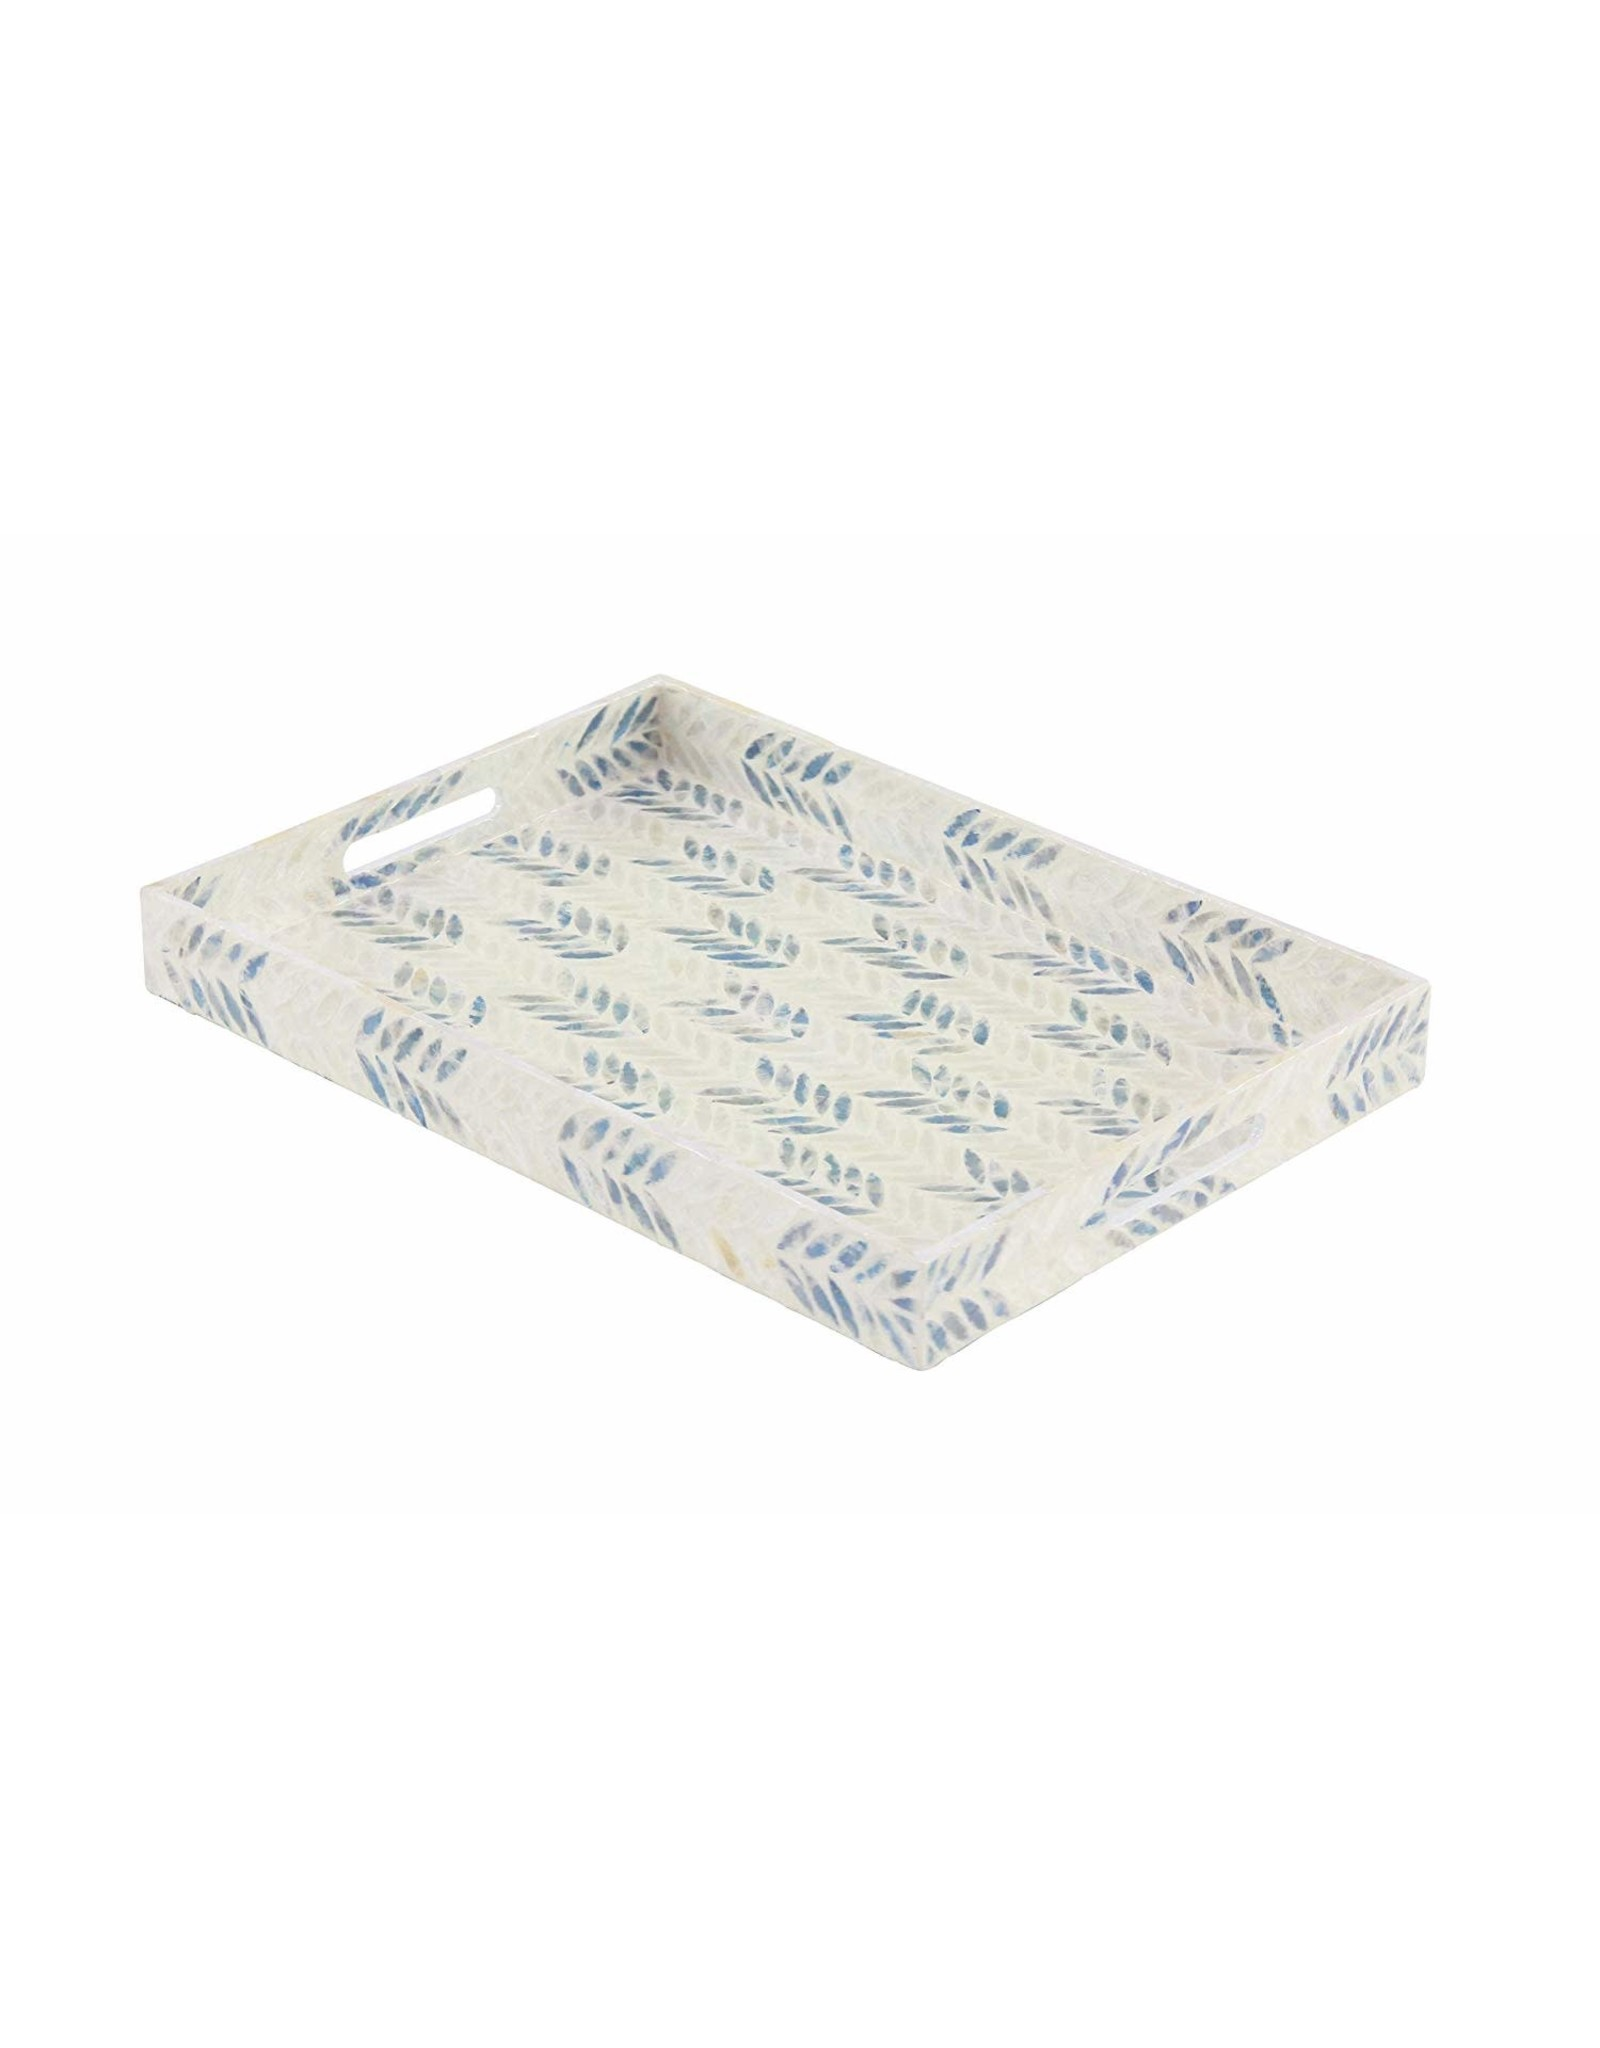 UMA ENTERPRISES INC. Mop Lacquer Tray S/3